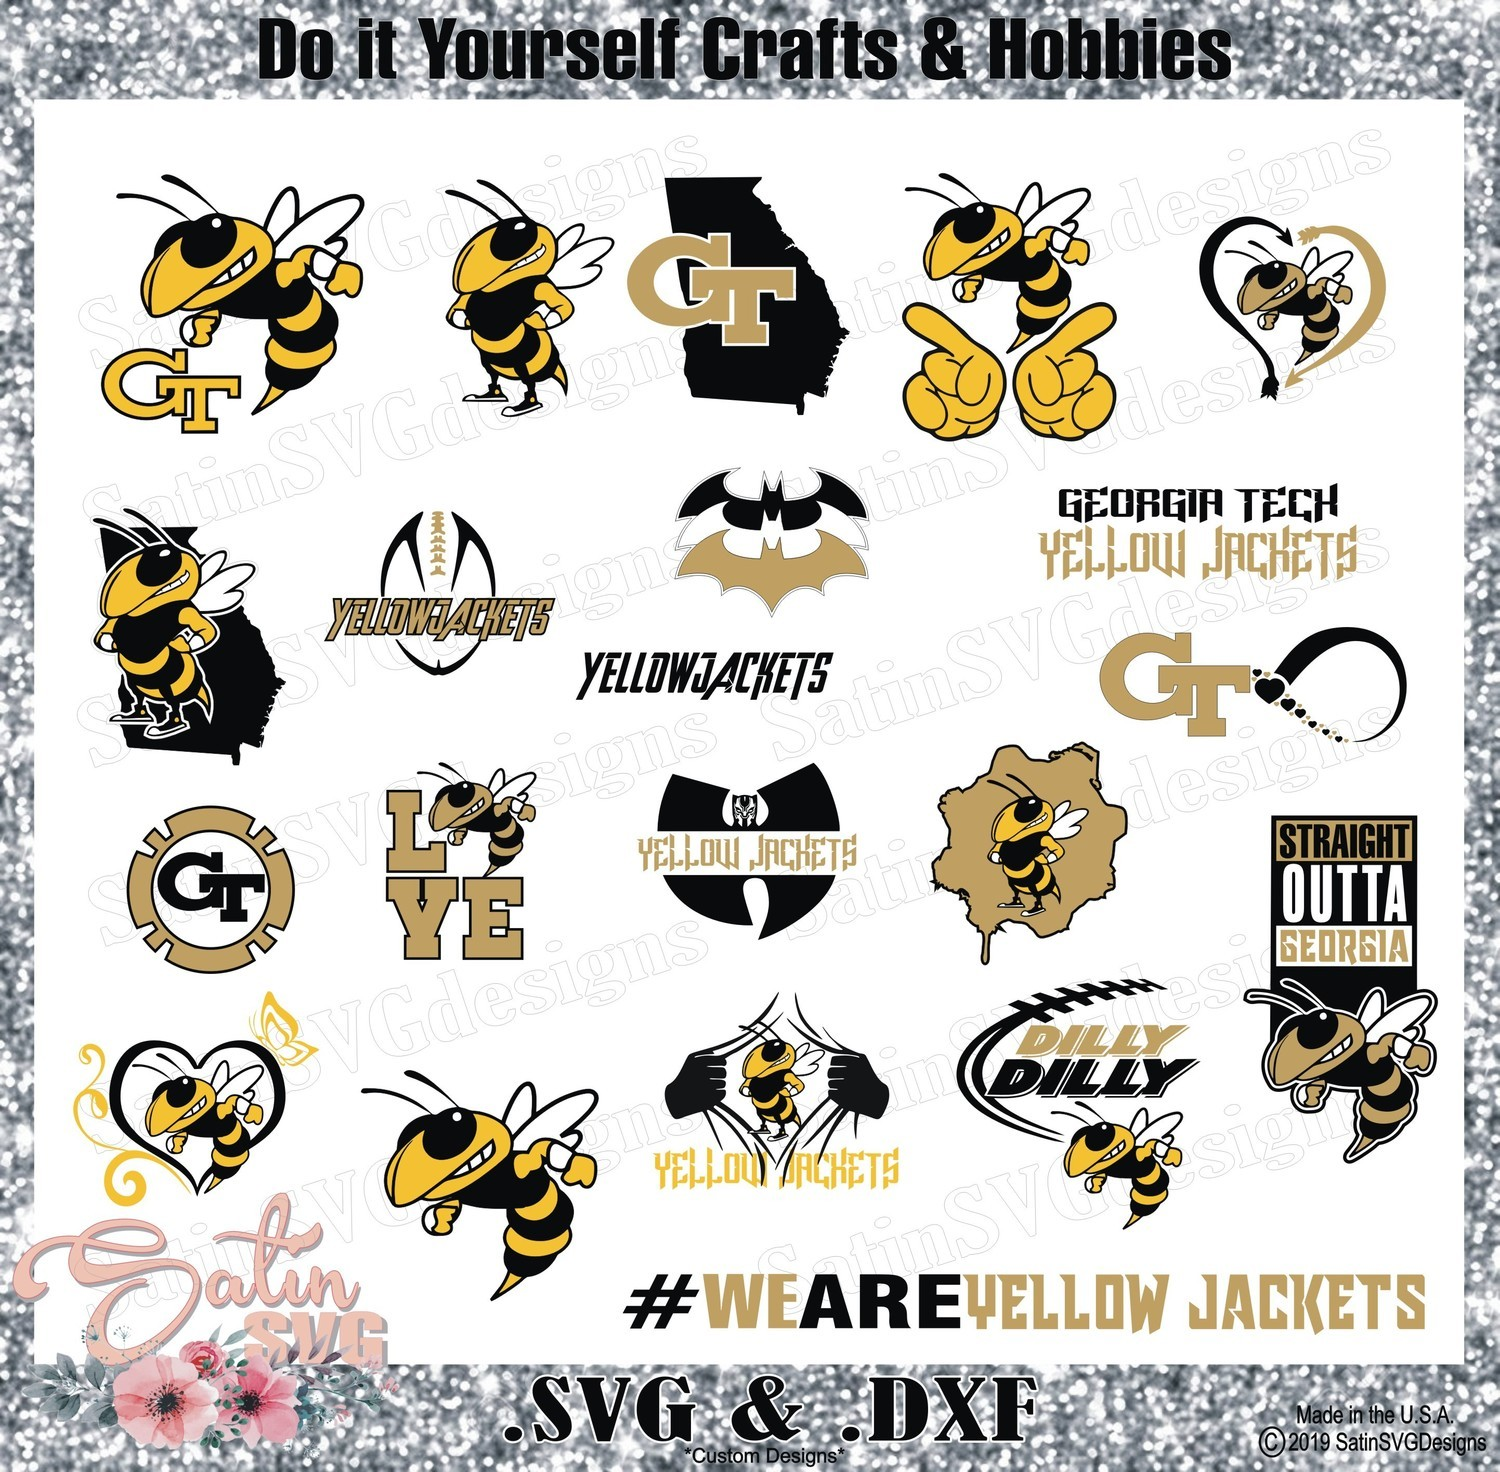 Georgia Tech Yellow Jackets SET College Design SVG Files, Cricut, Silhouette Studio, Digital Cut Files